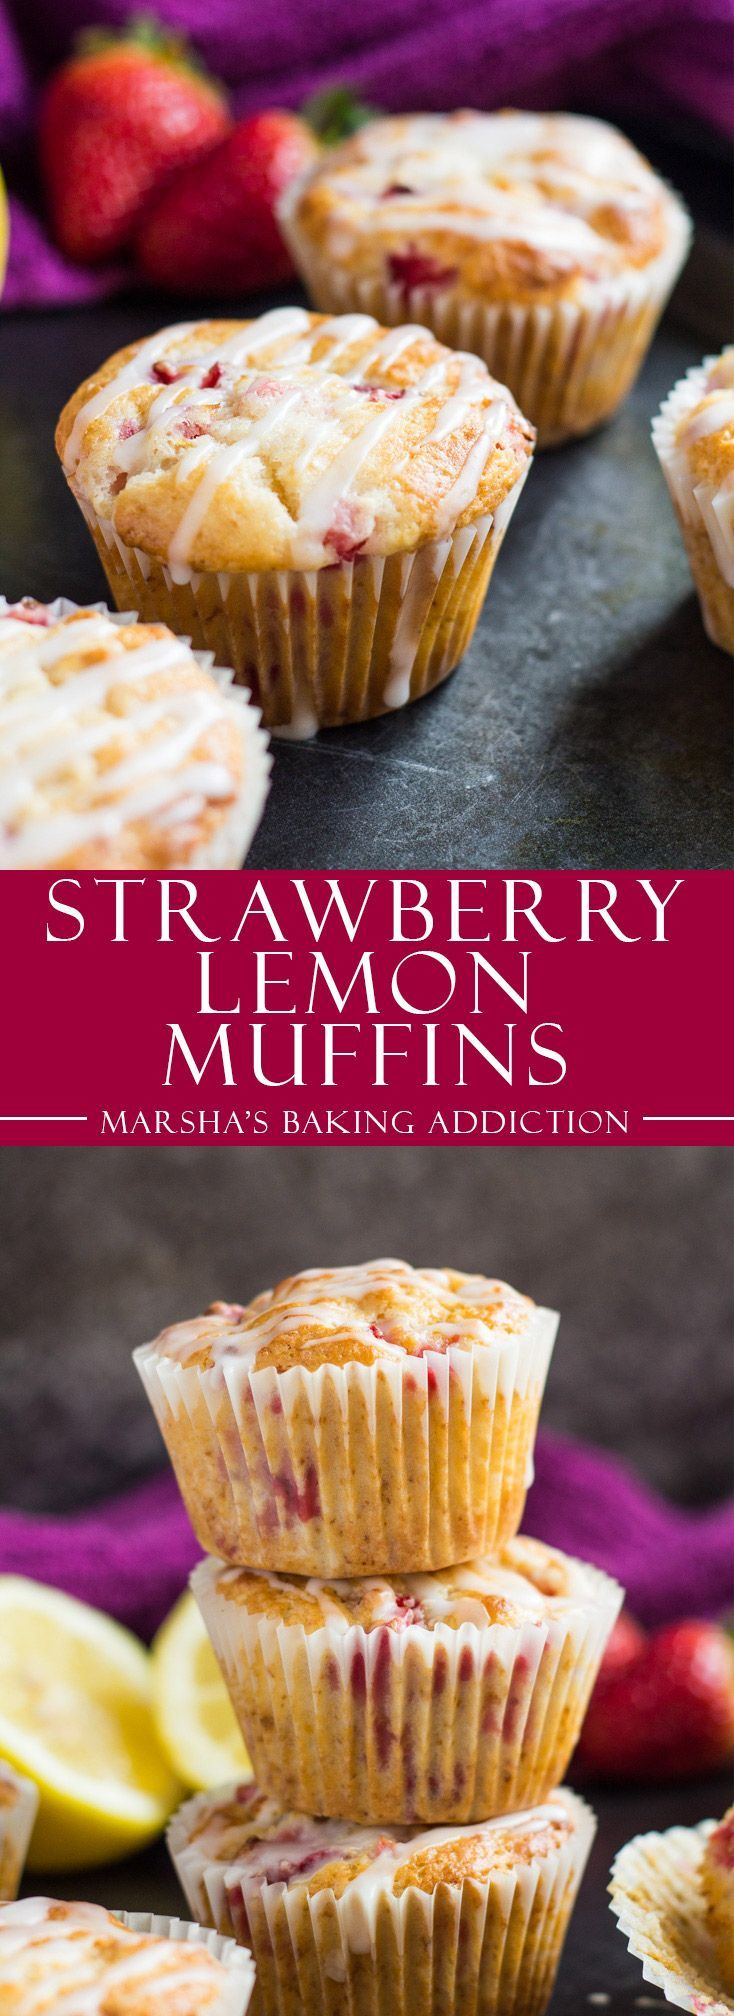 Strawberry Lemon Muffins | http://marshasbakingaddiction.com /marshasbakeblog/